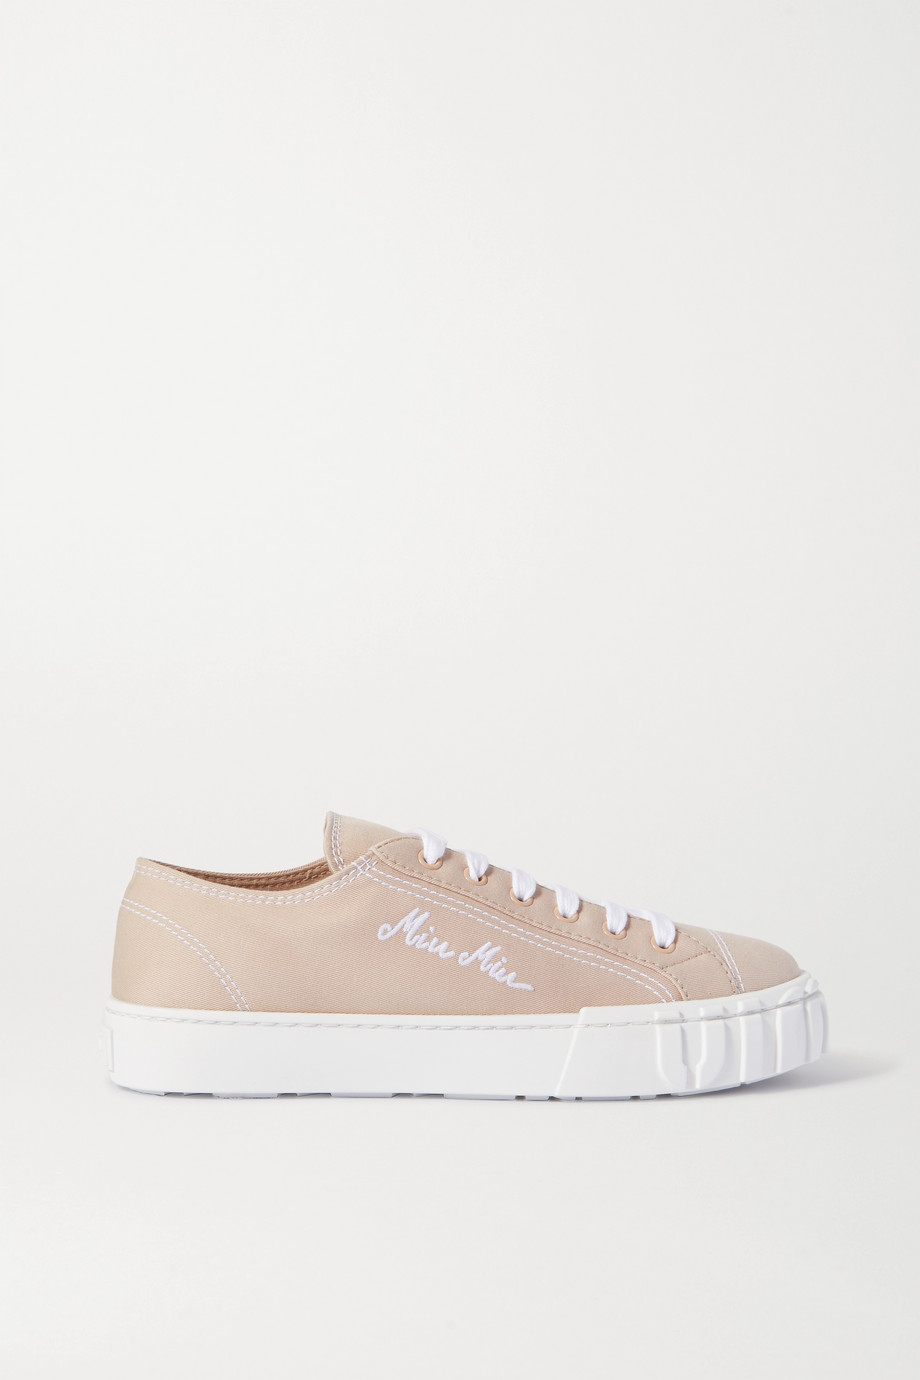 Miu Miu Embroidered canvas sneakers